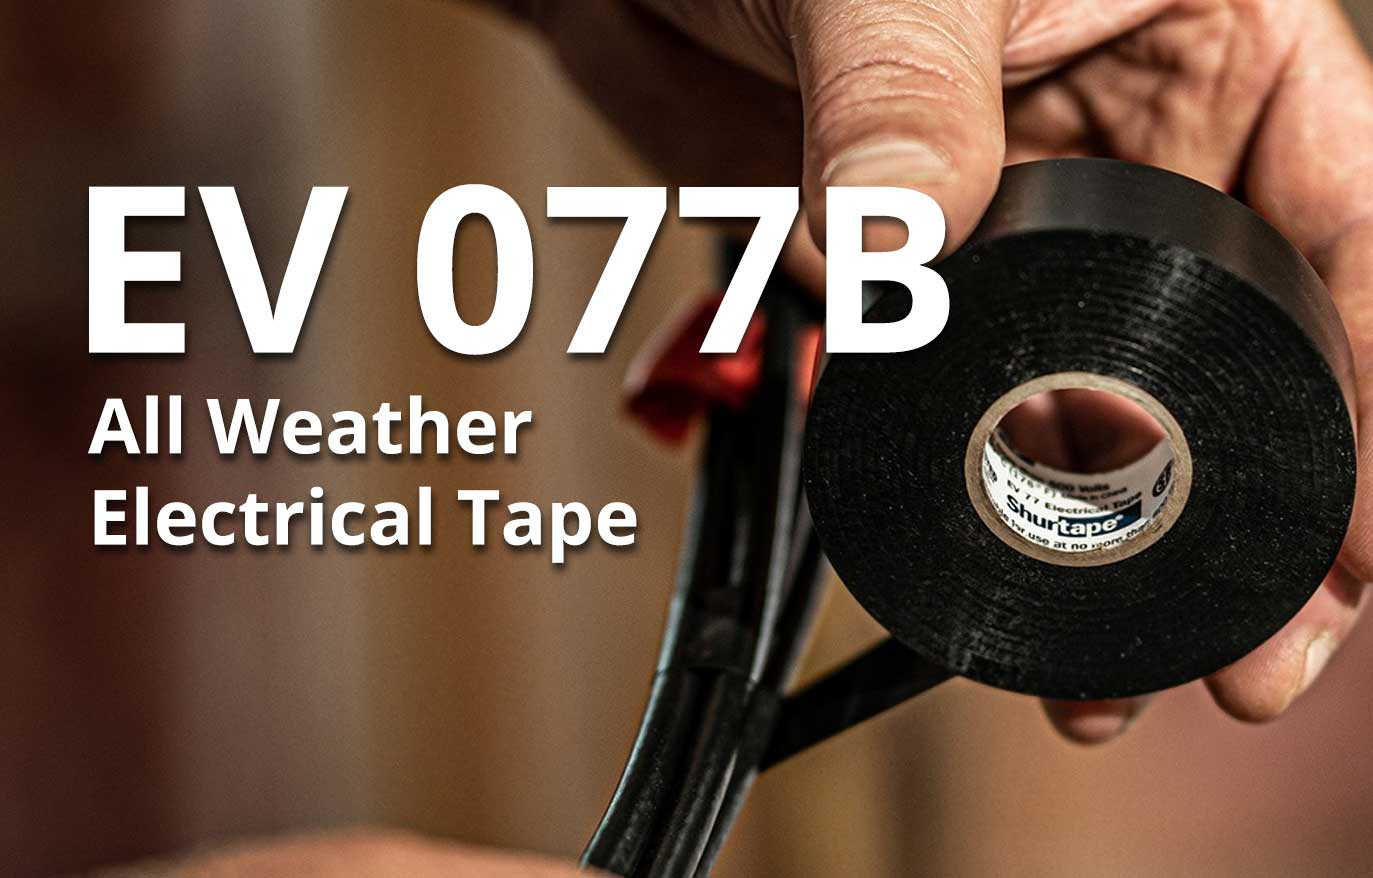 EV 077B All Weather Electrical Tape